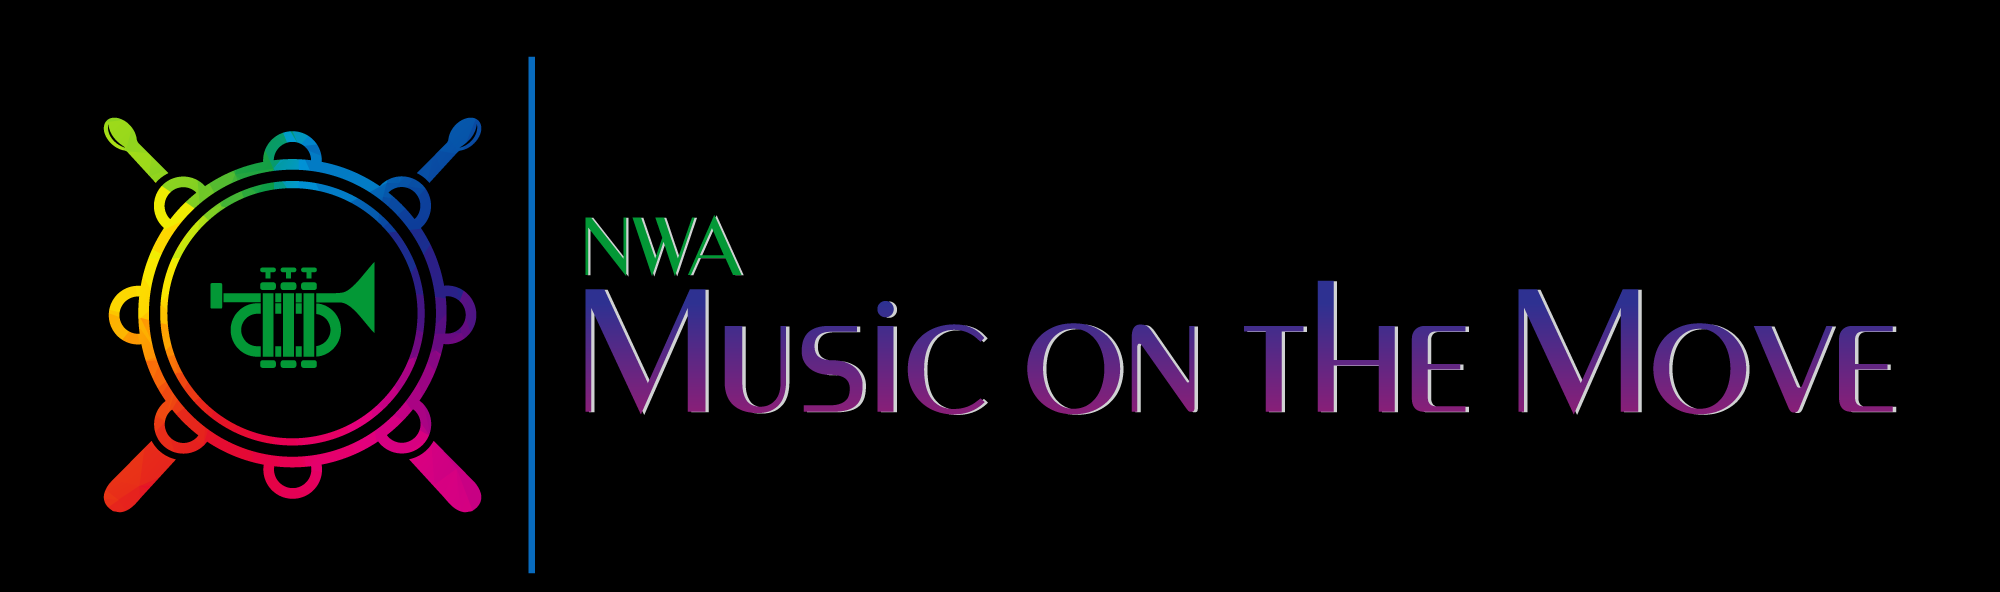 NWA-Music-on-the-Move-Logo-D1.png